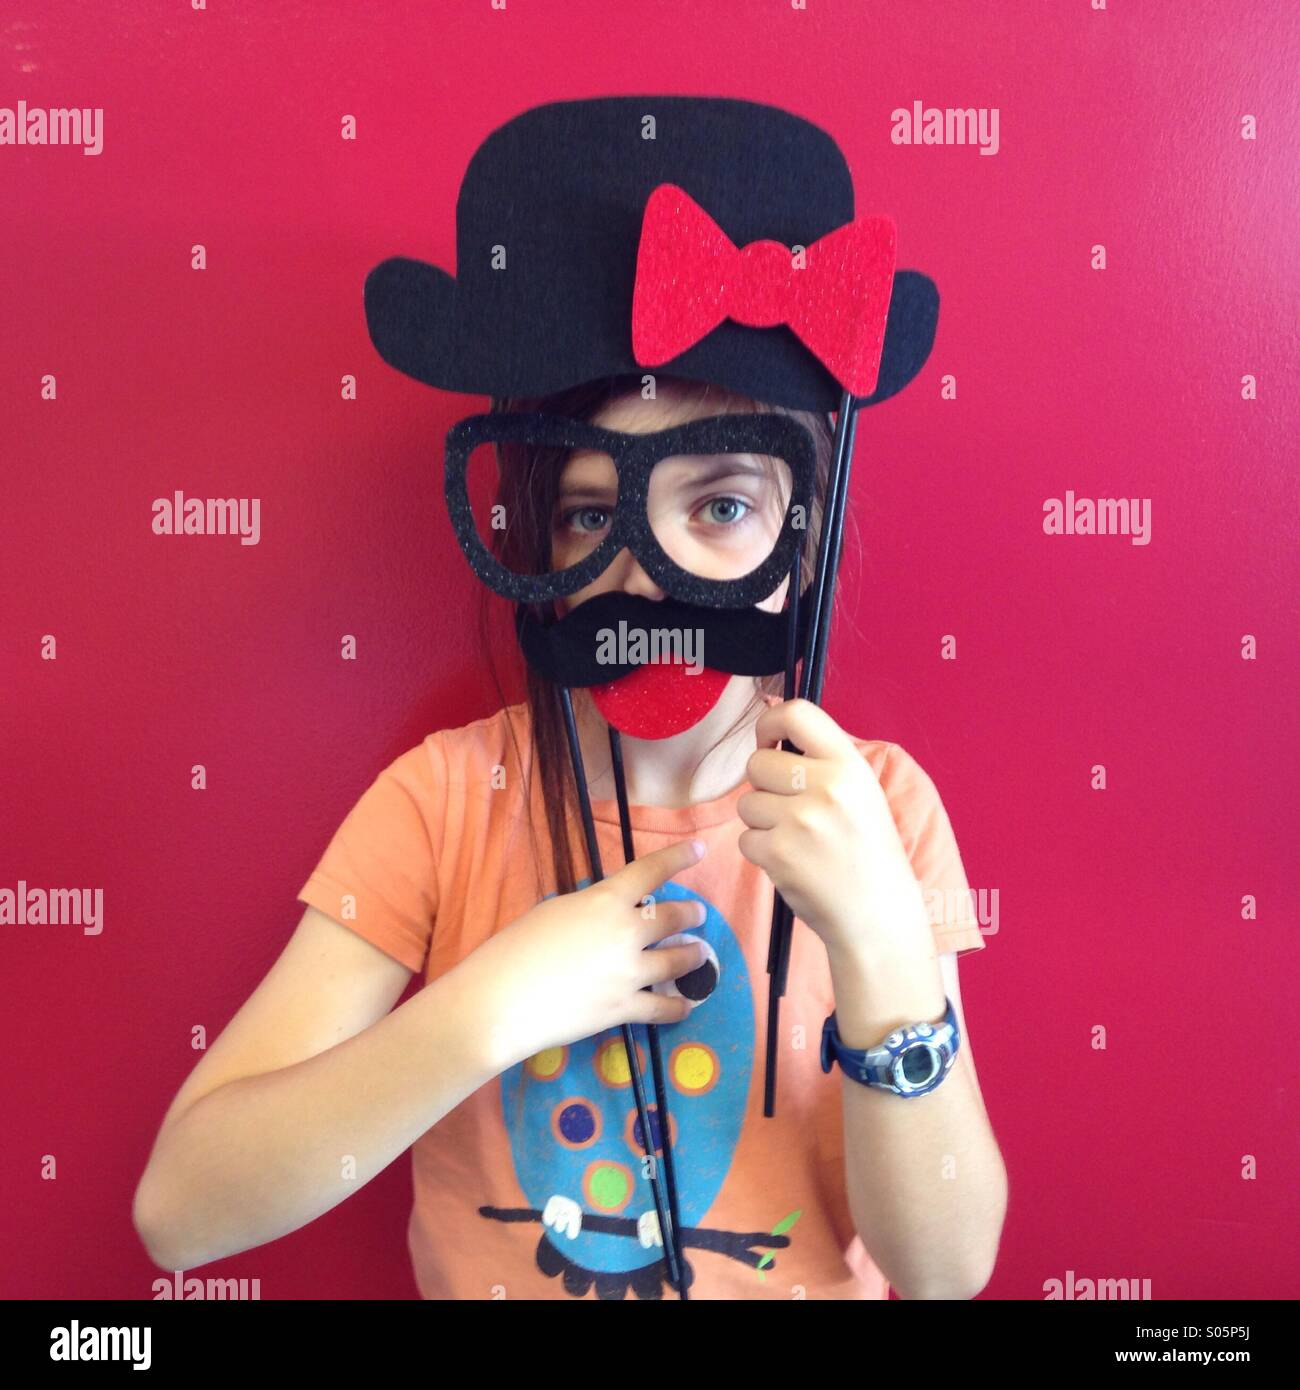 Silly kid wears fake glasses and a mustache against a red wall. - Stock Image